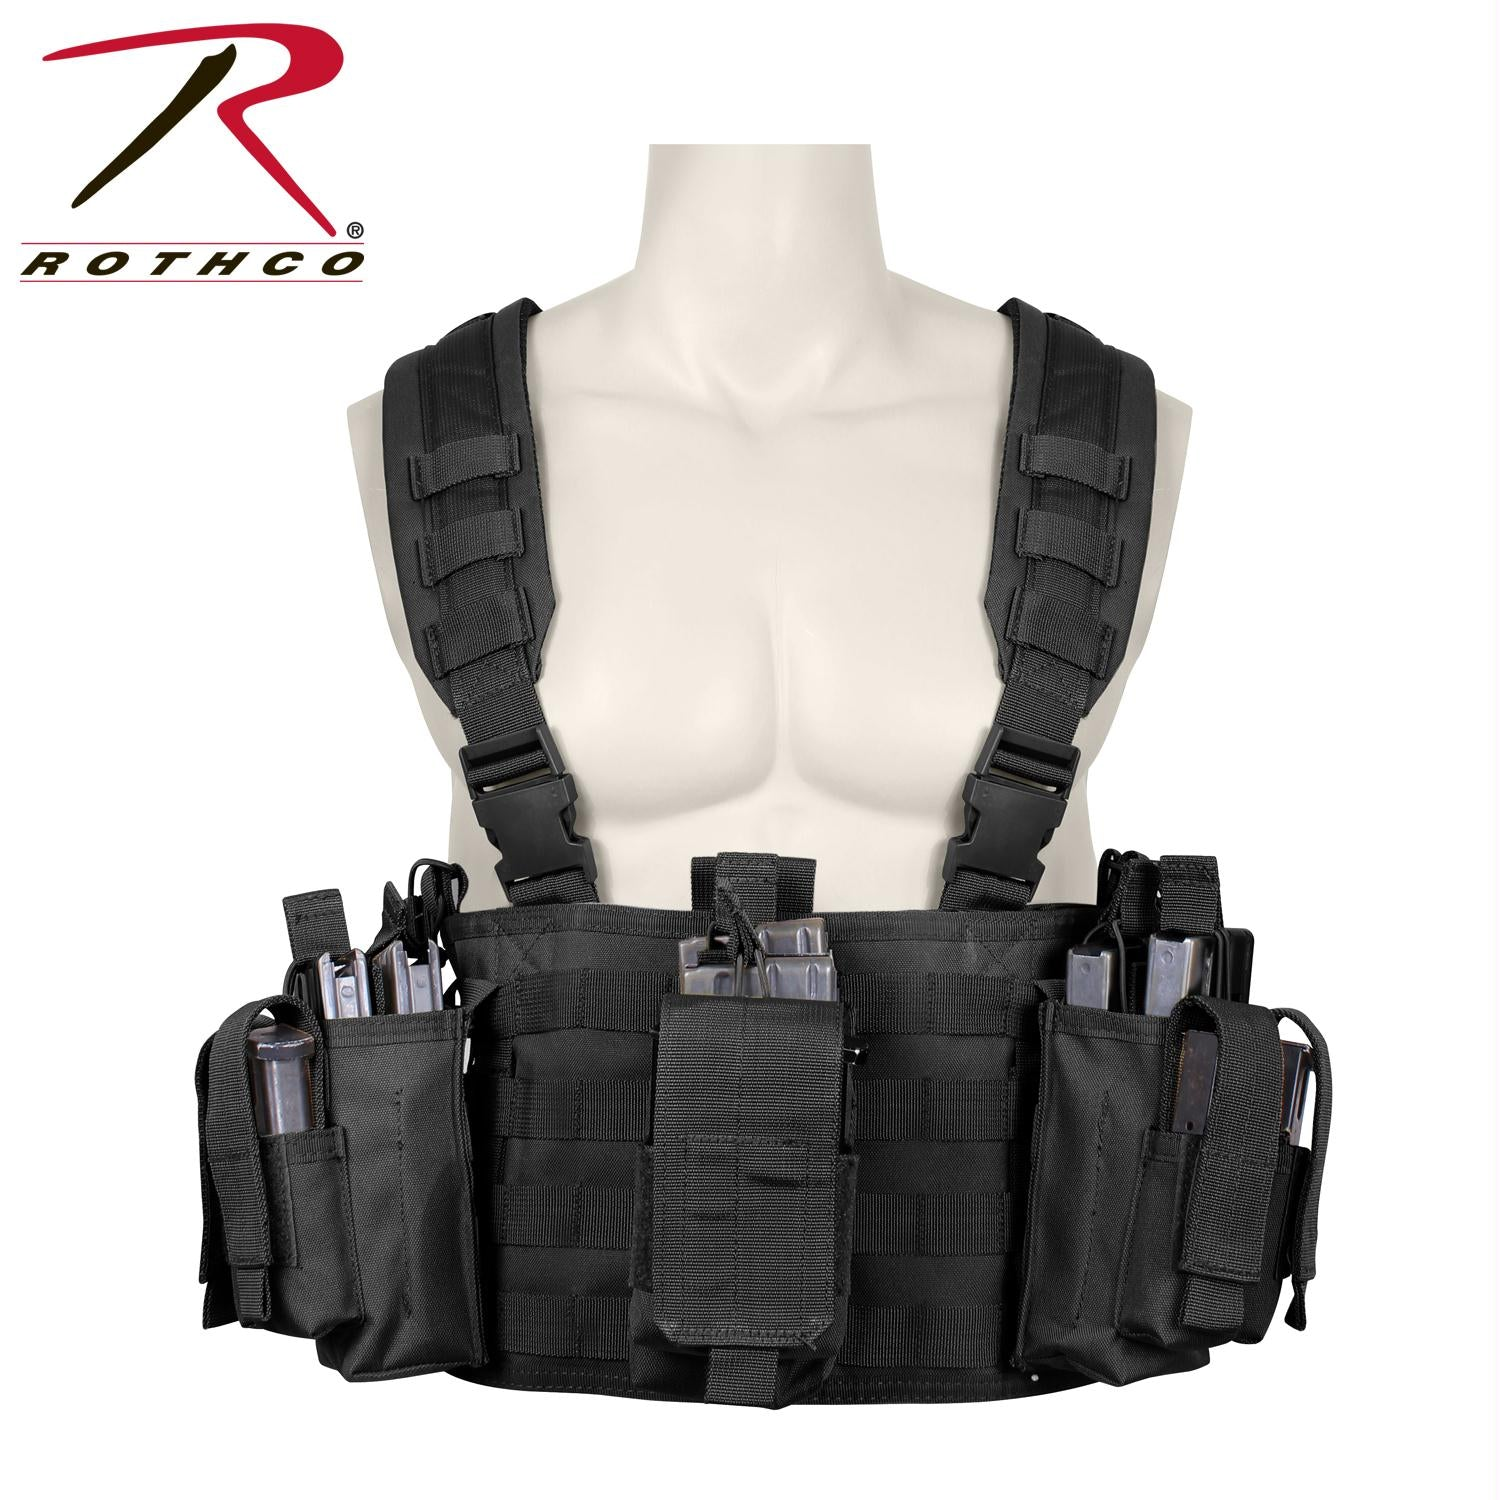 Rothco Operators Tactical Chest Rig - Black